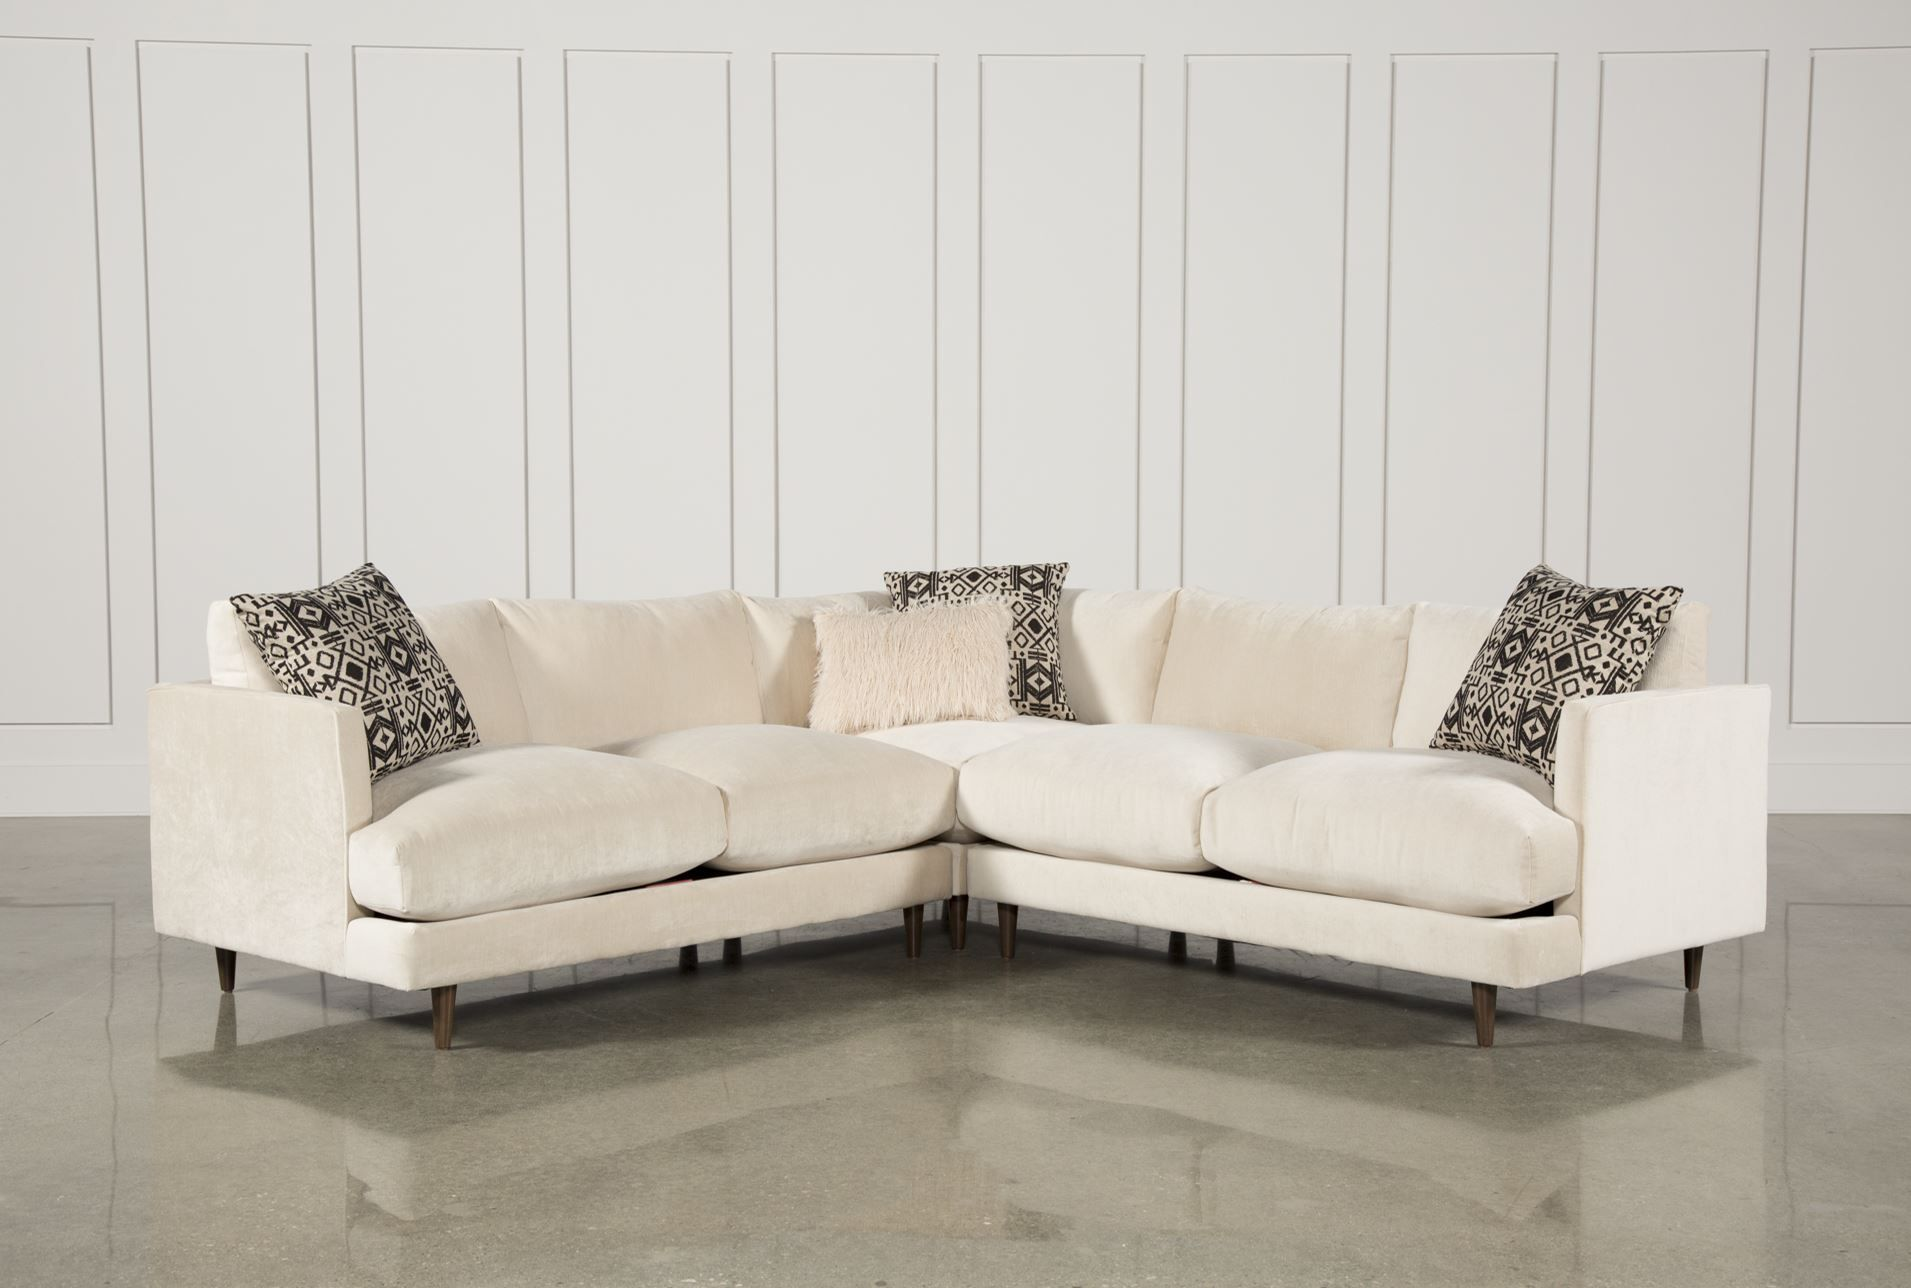 Adeline 3 piece sectional i like the lines of this piece modern yet classic